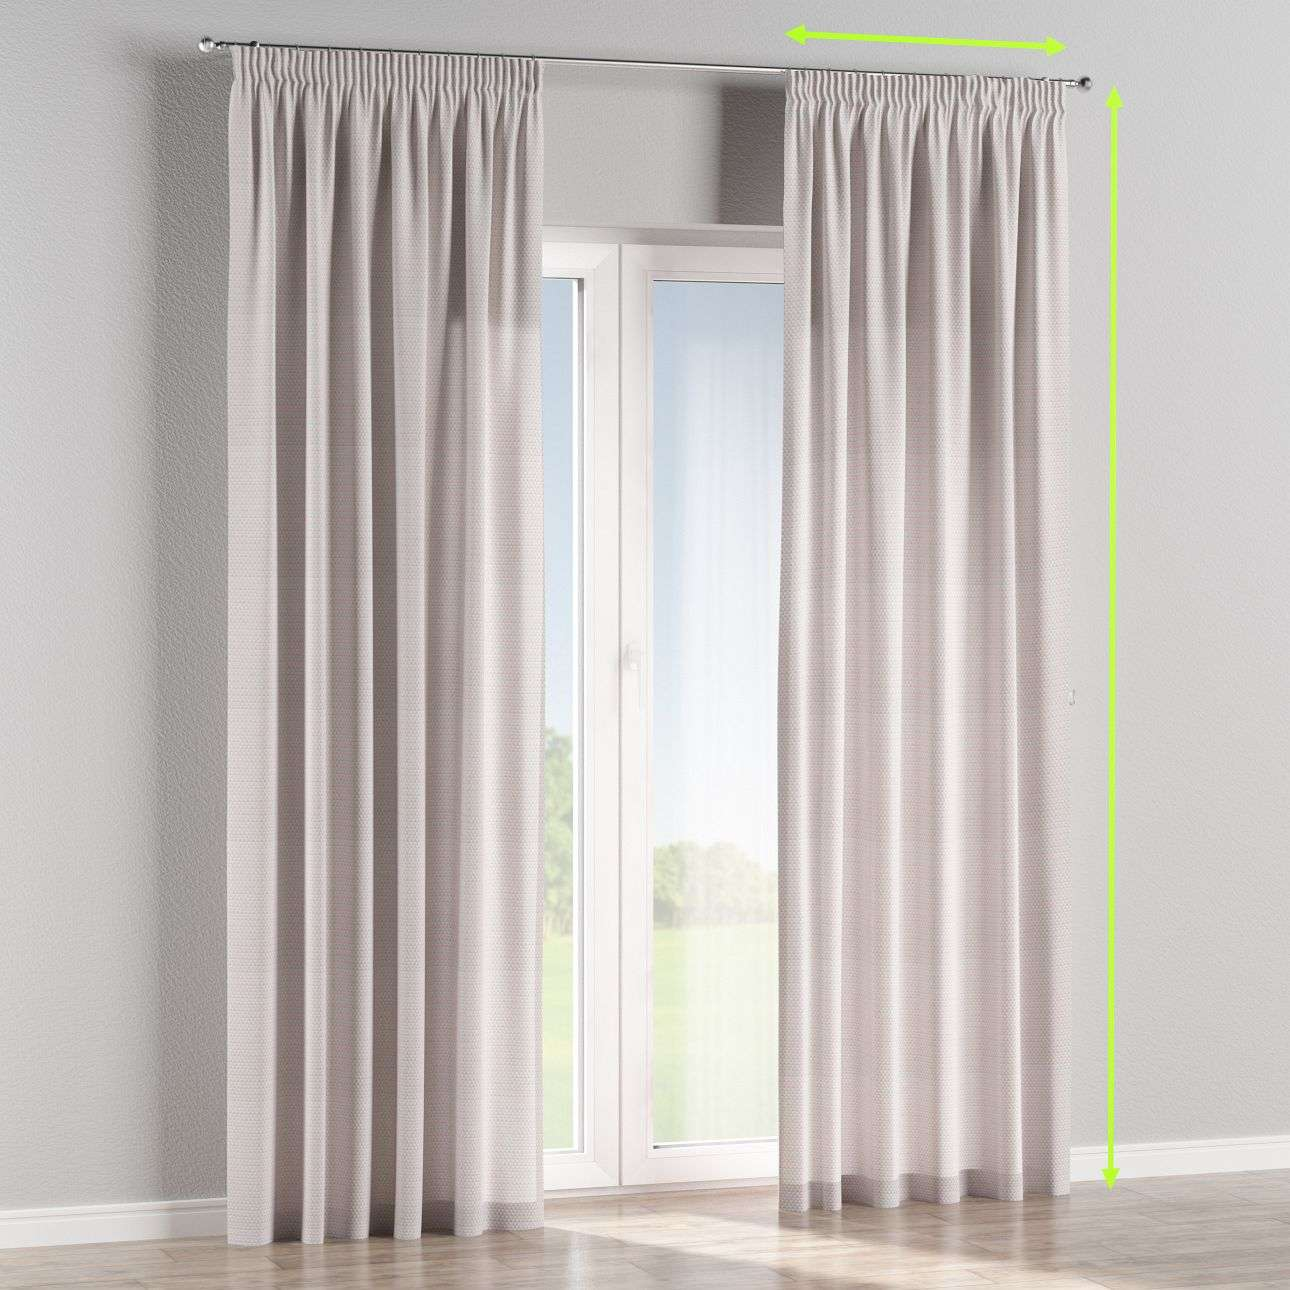 Pencil pleat curtains in collection Rustica, fabric: 140-28